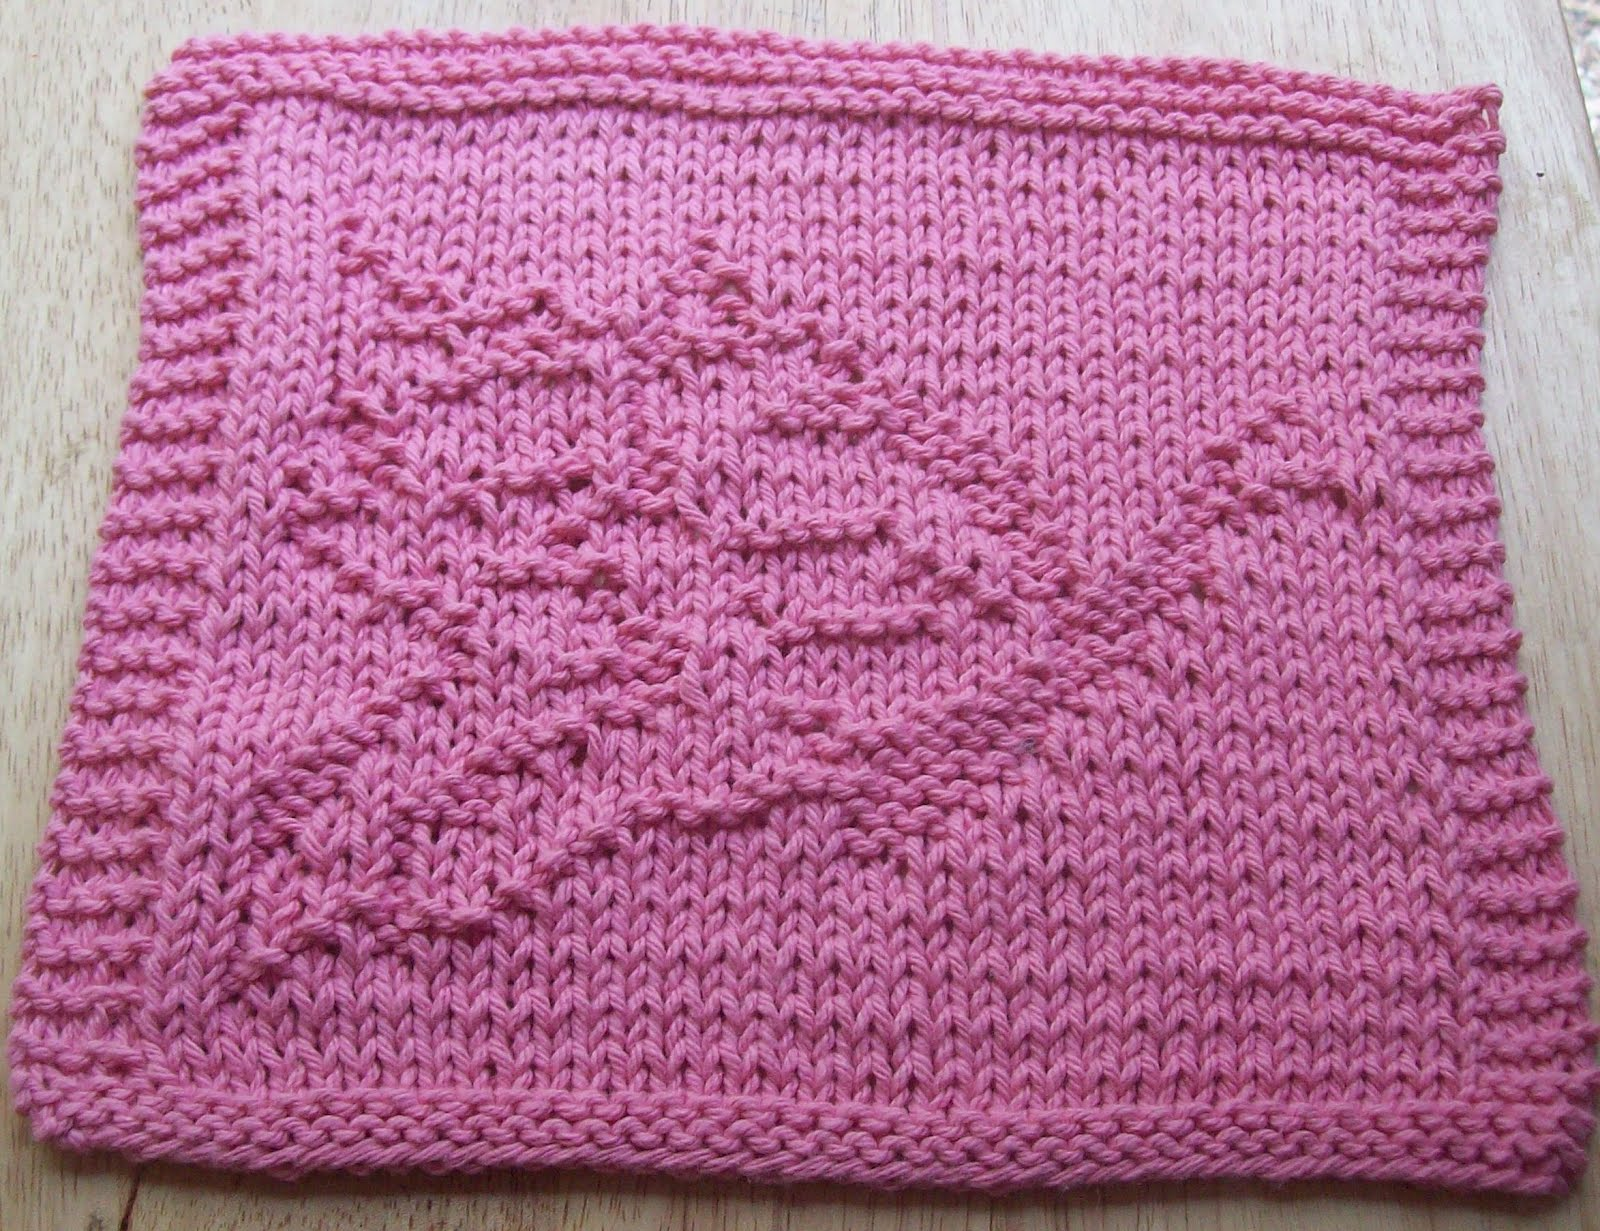 Free Knitting Pattern Butterfly Dishcloth : DigKnitty Designs: Another Butterfly Knit Dishcloth Pattern